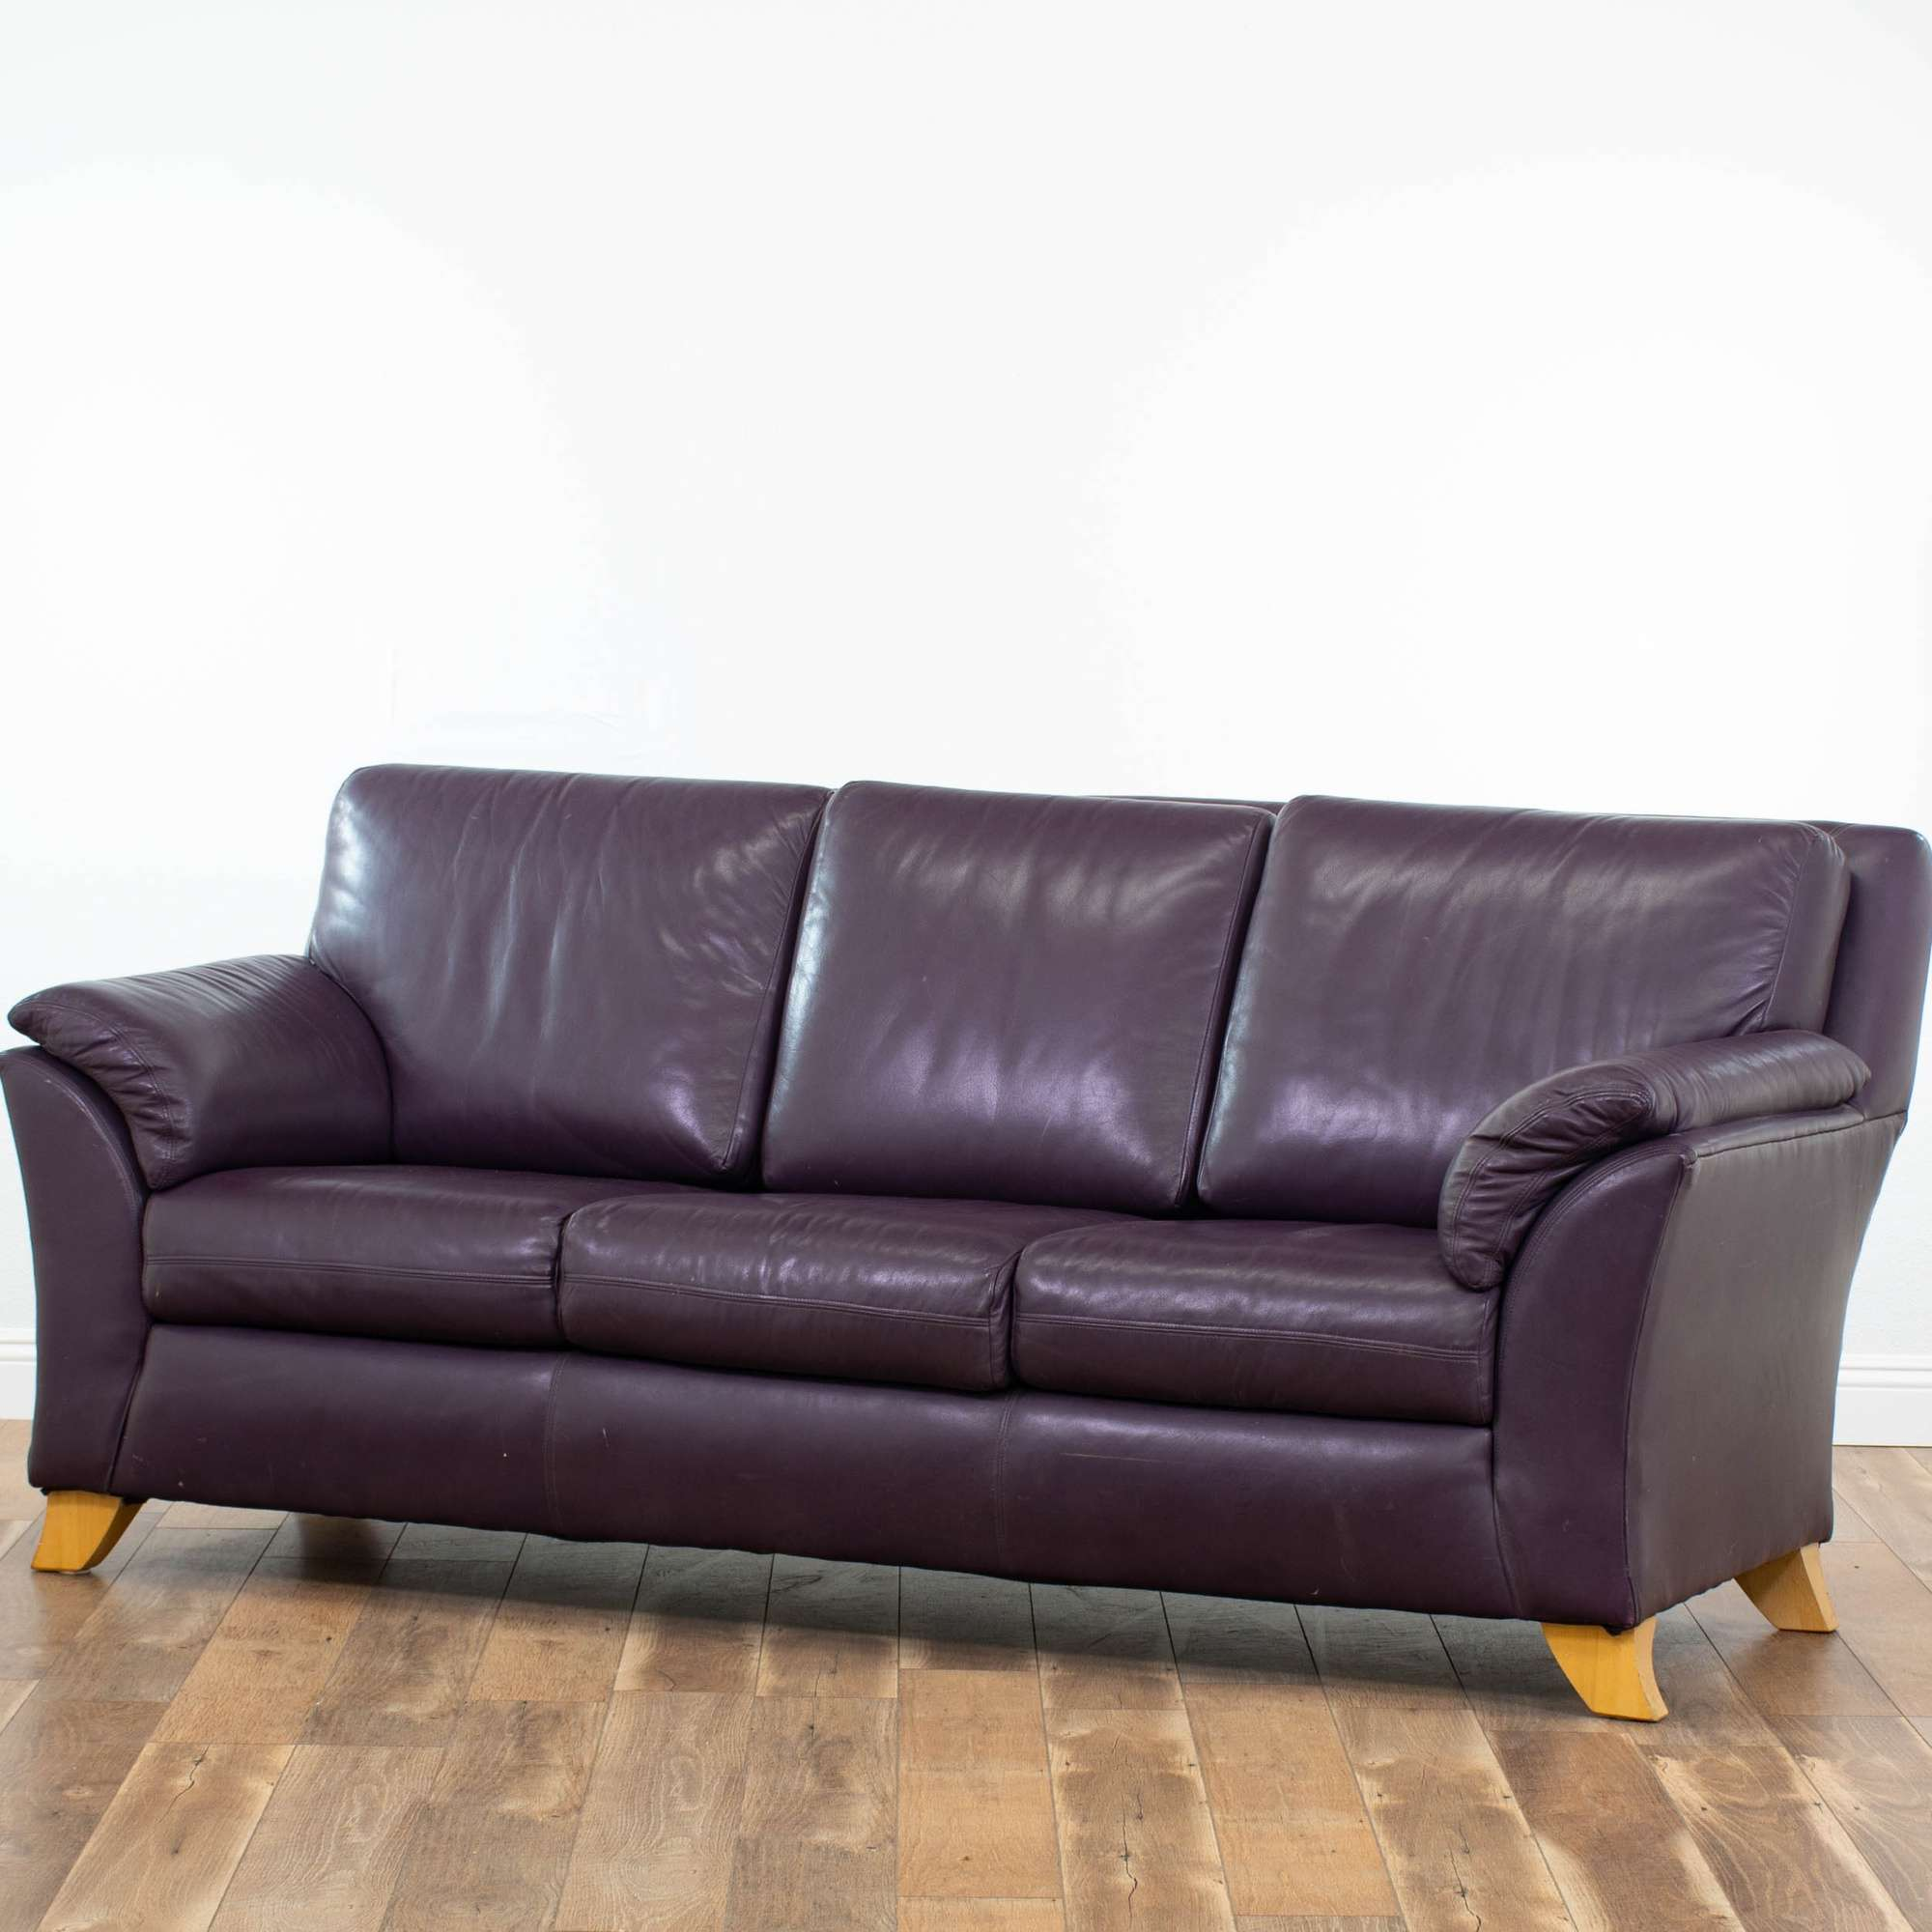 Genuine Leather Sofa By The Leather Factory In Plum ...